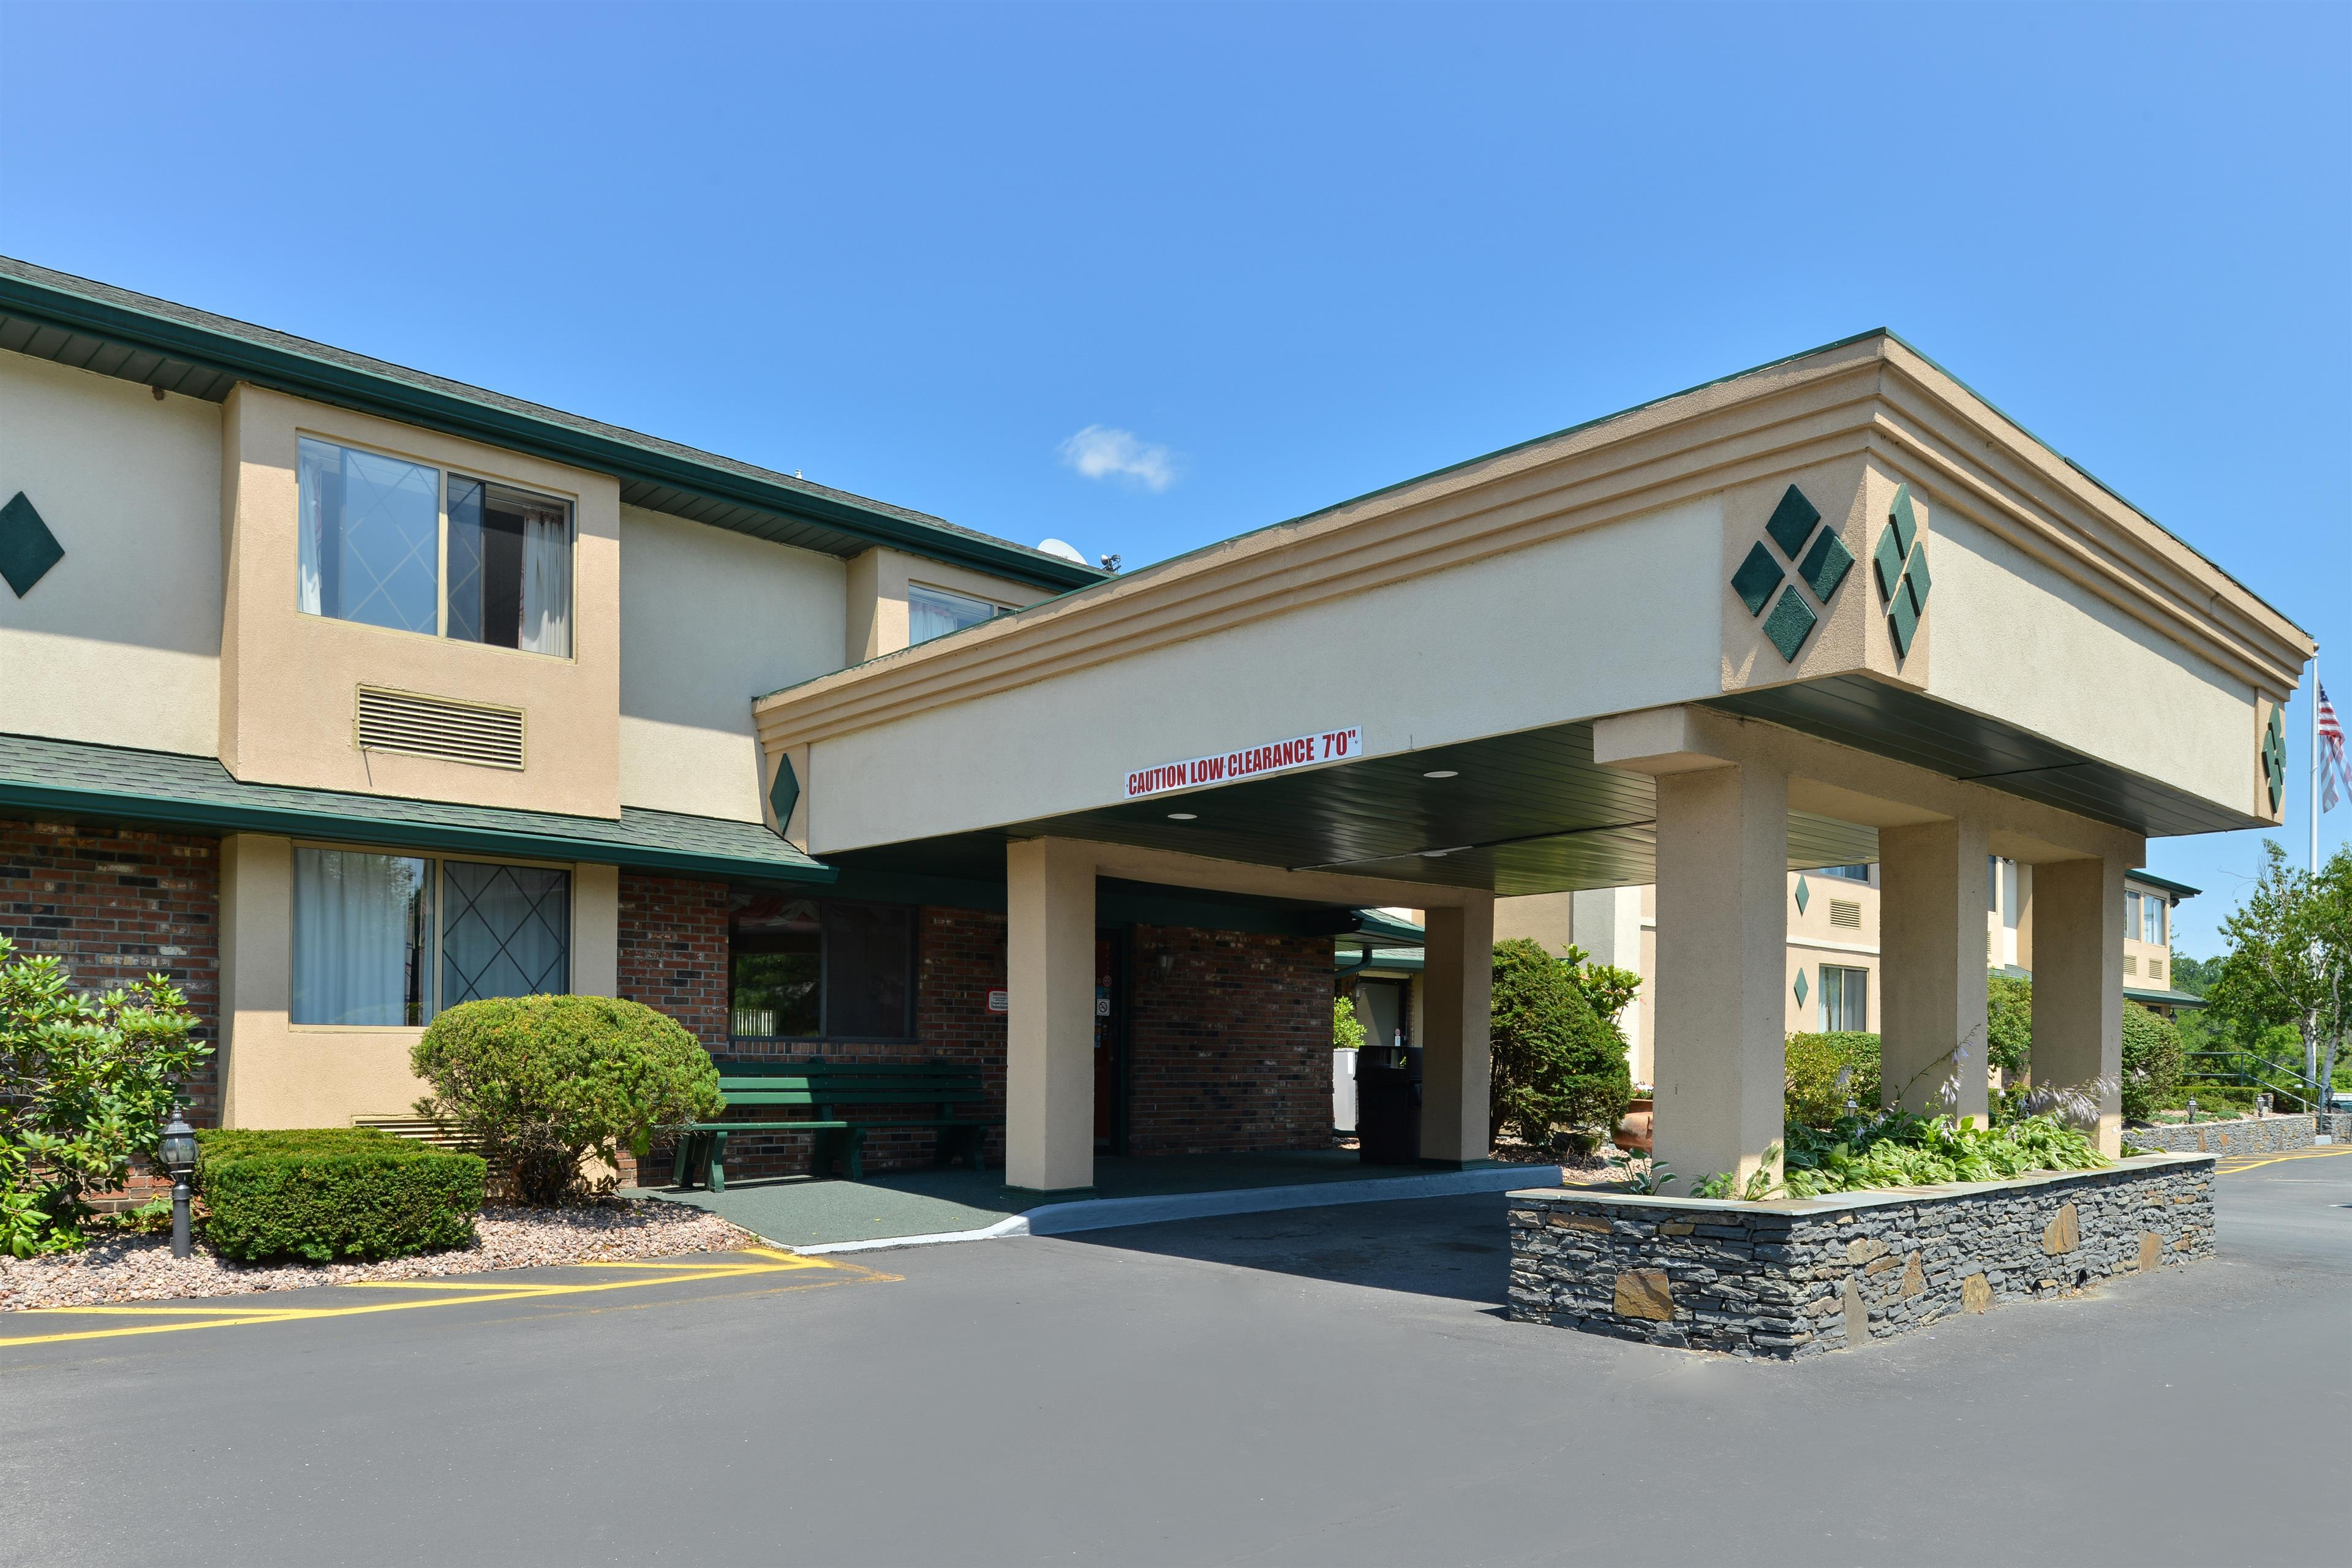 Americas Best Value Inn - New Paltz image 0